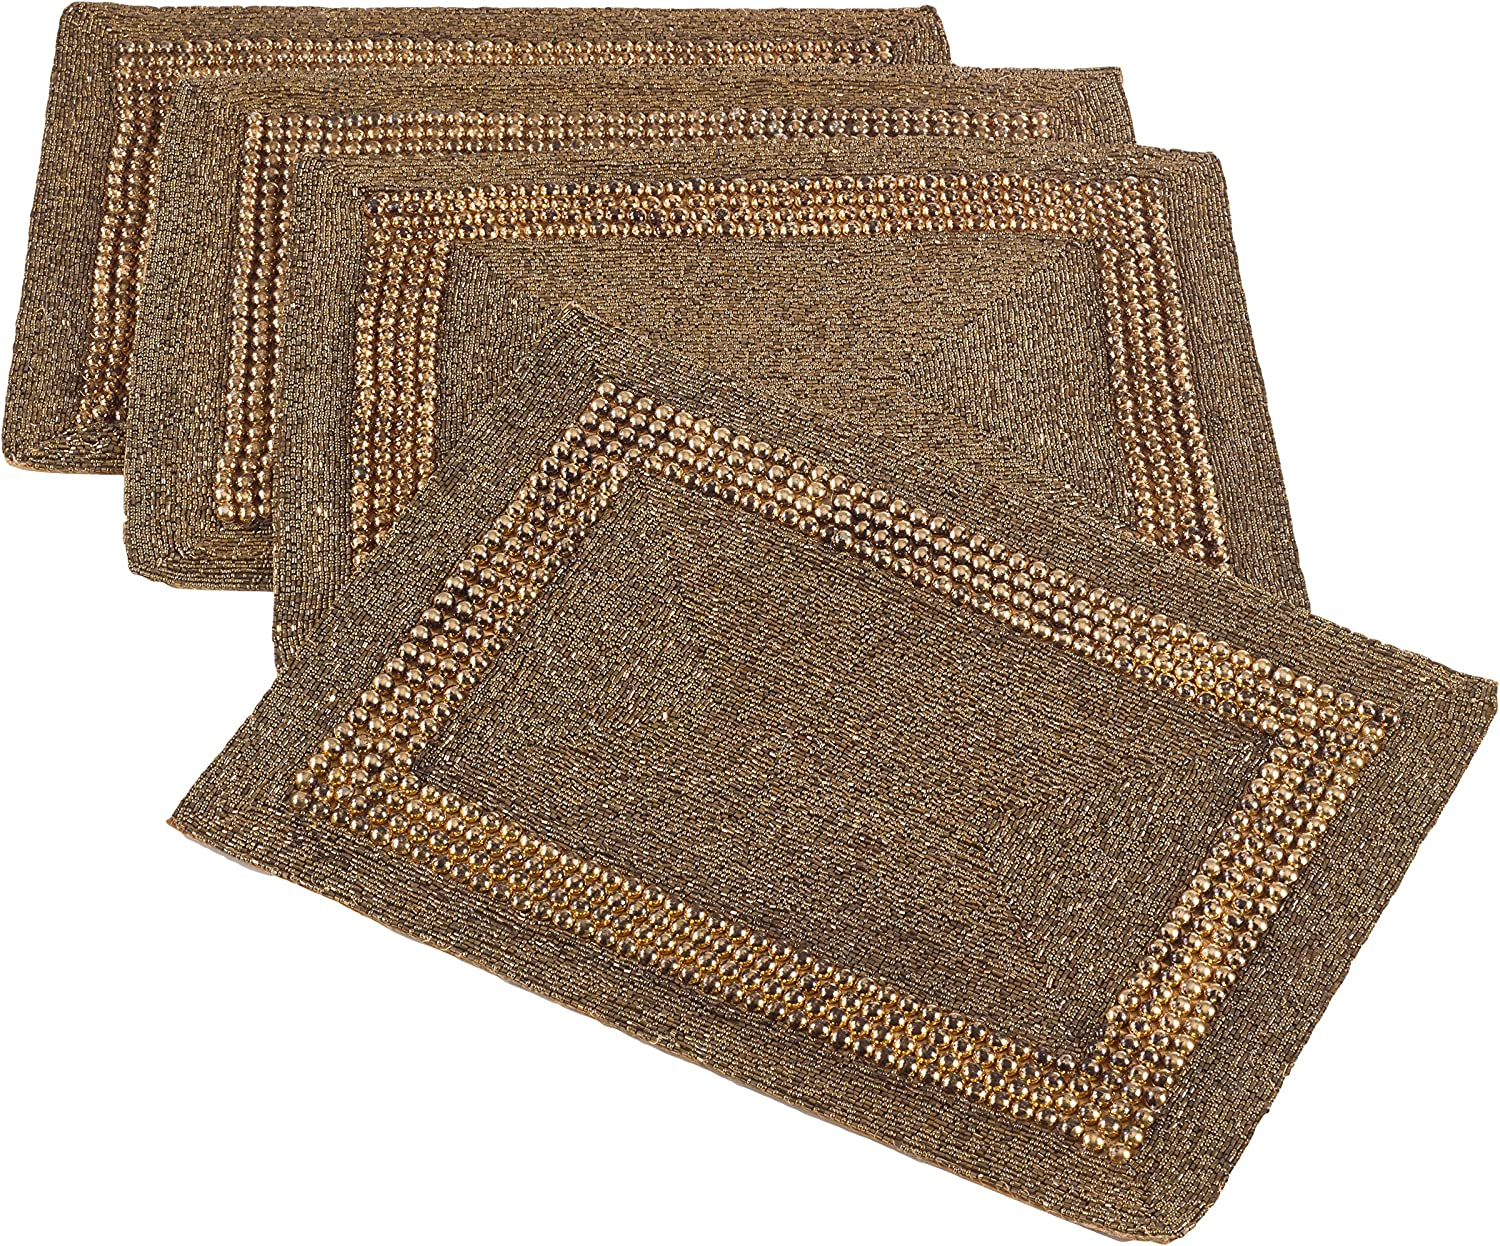 SARO LIFESTYLE 3270.BZ1318B Beaded Design Placemat, Bronze, 13 x19  (Set of 4 pcs)